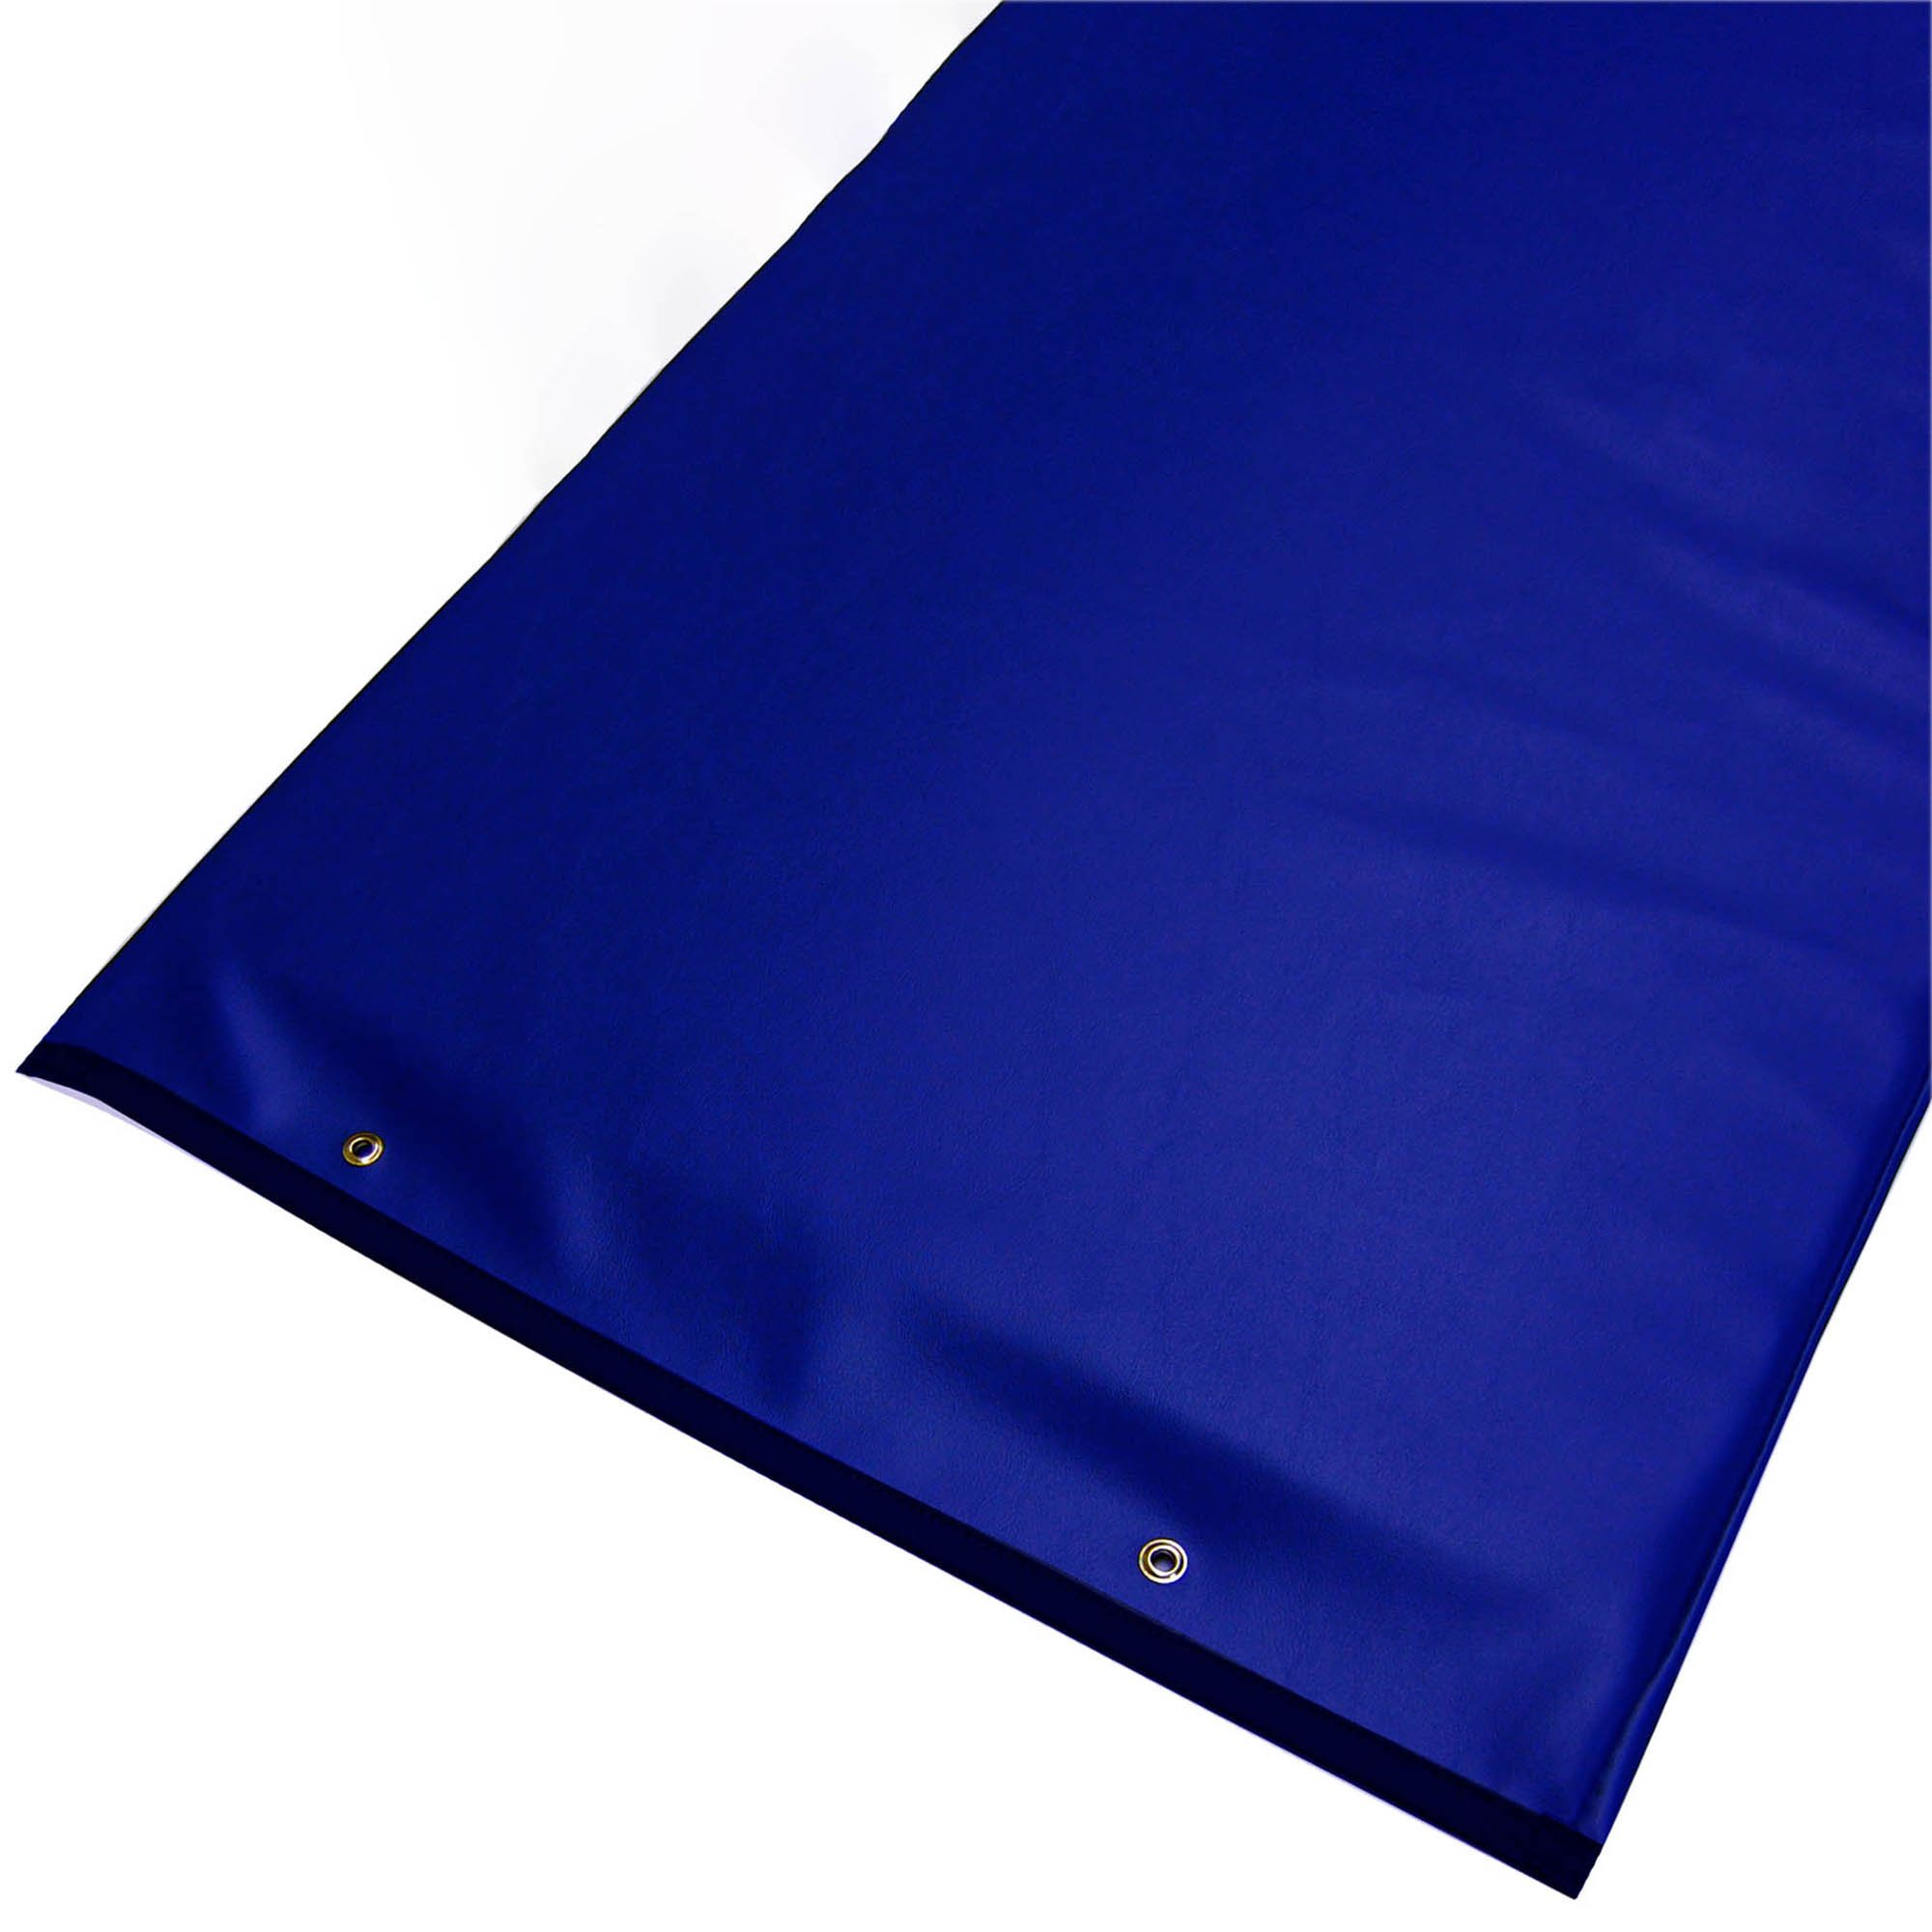 Standard Radiolucent X-Ray Firm Foam Table Pad - Blue Vinyl, With Grommets 72